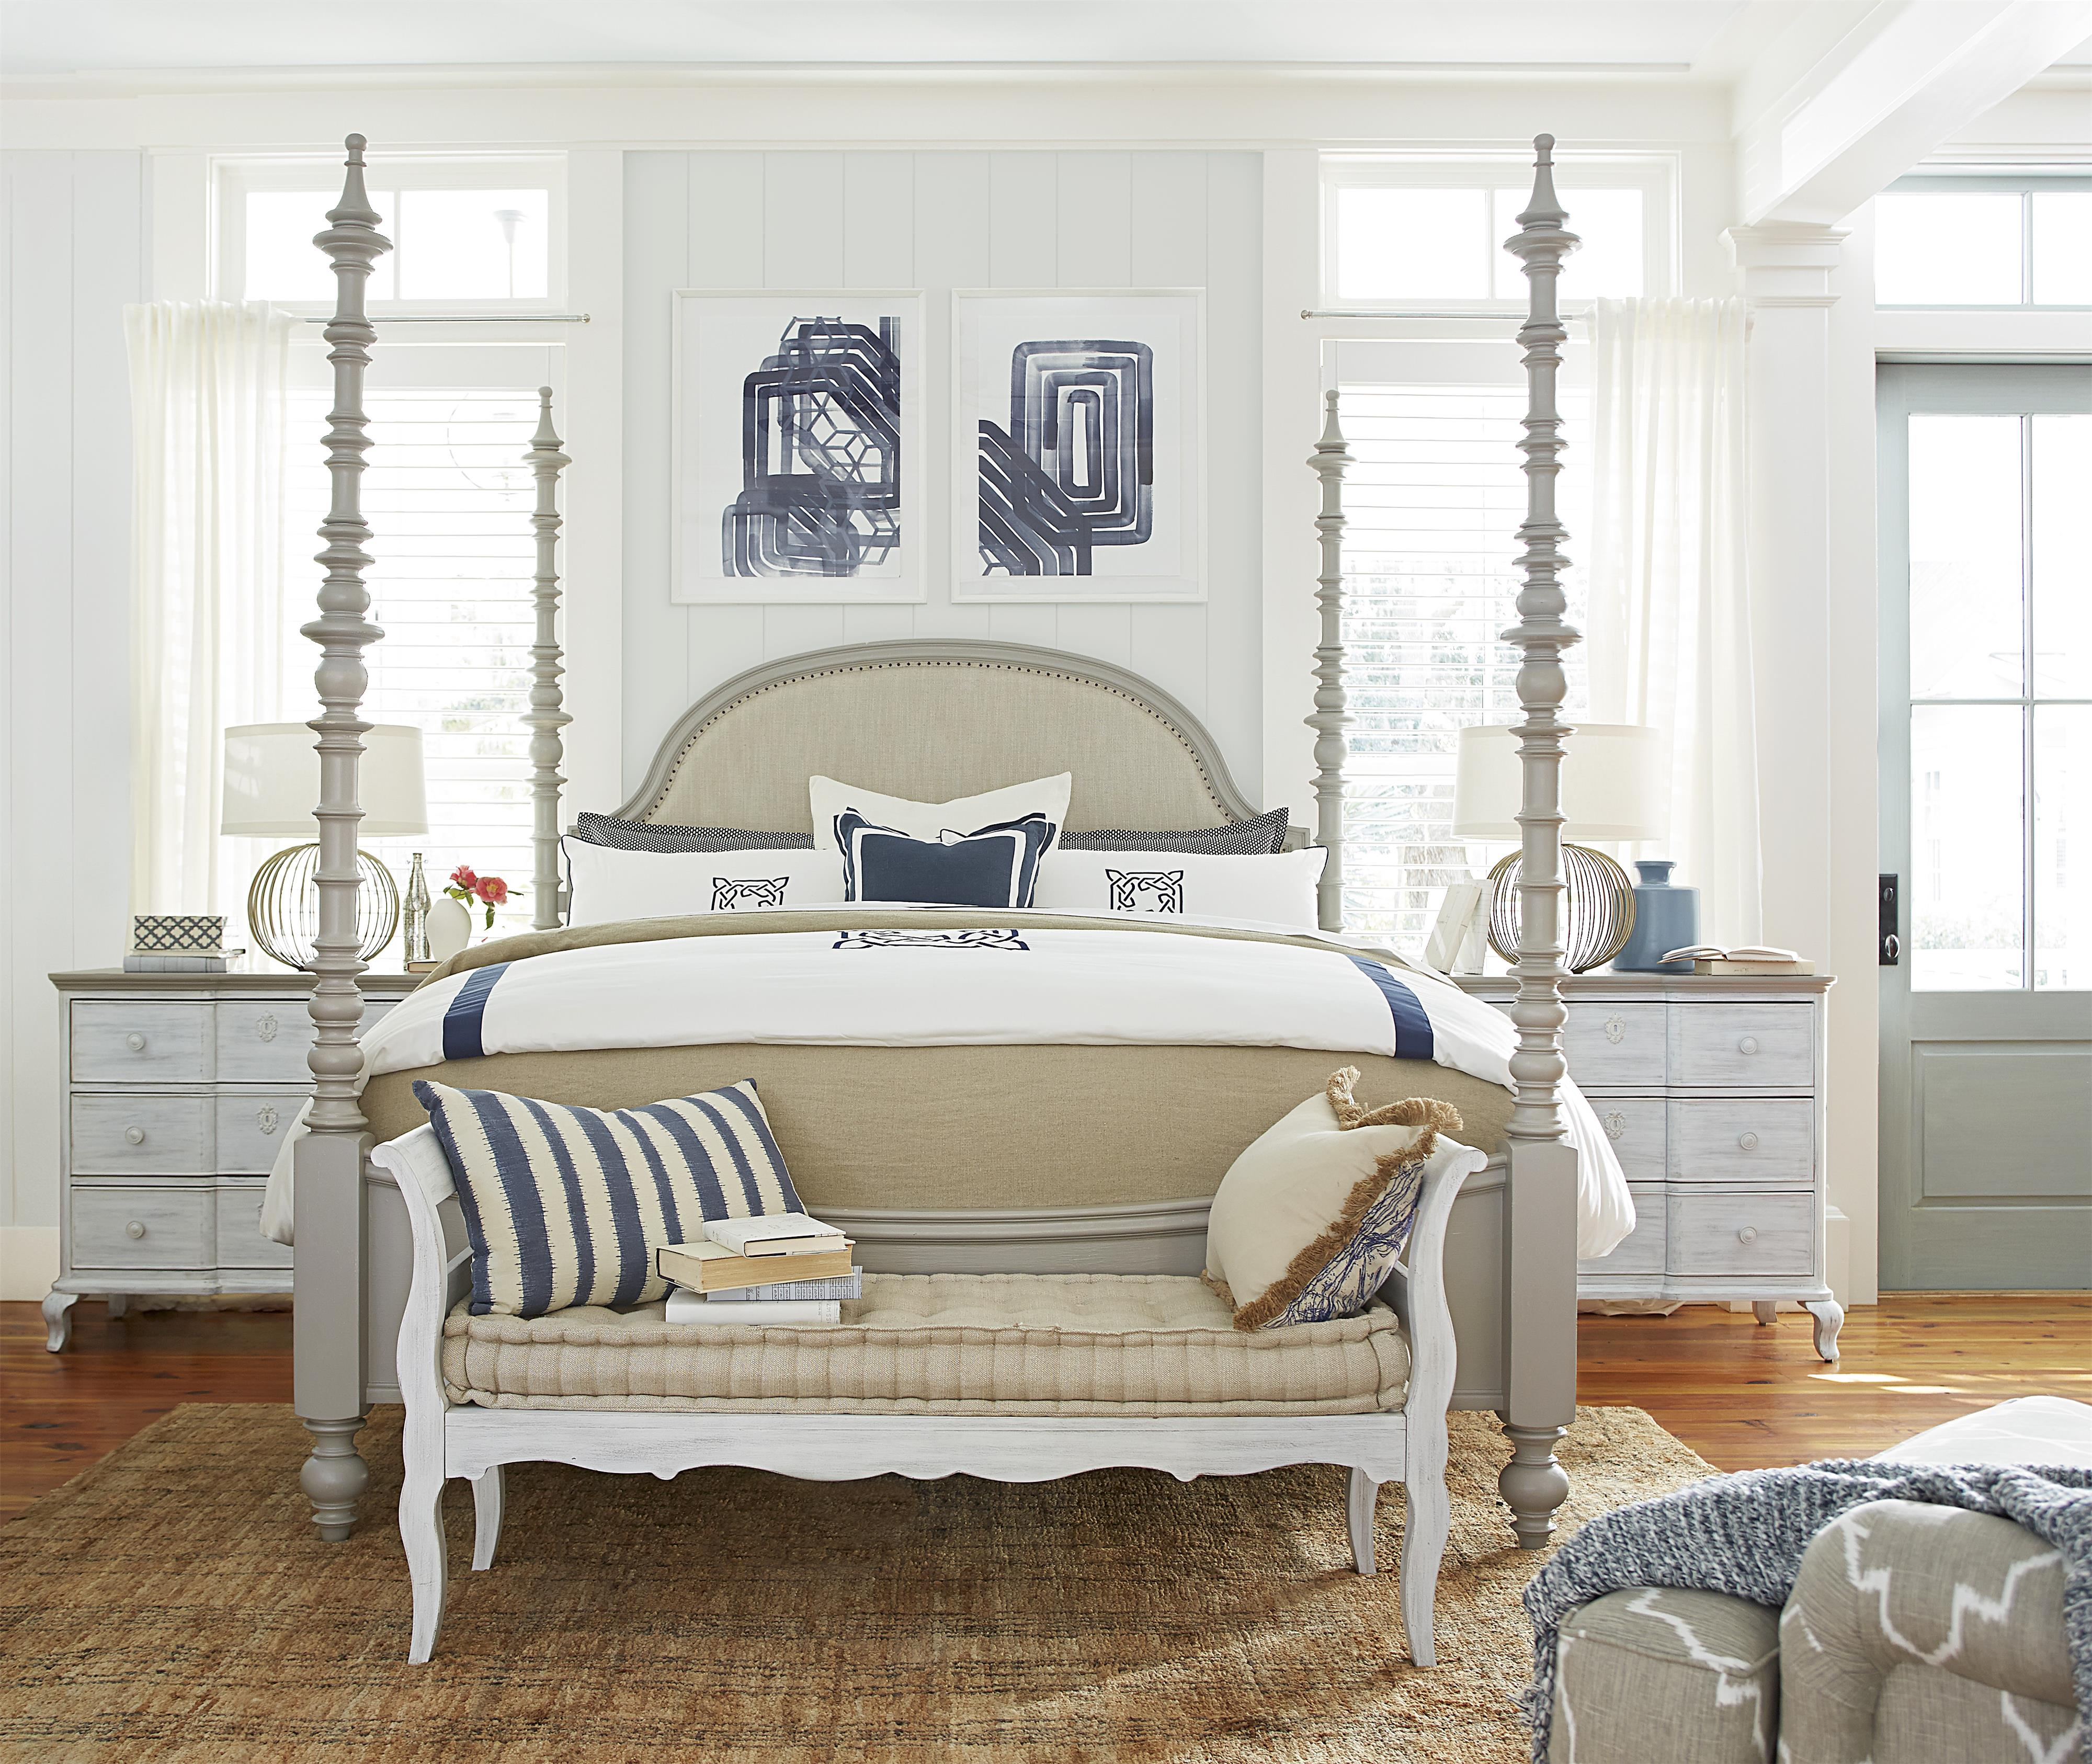 Paula Deen by Universal Dogwood Queen Bedroom Group - Item Number: 599 Q Bedroom Group 3